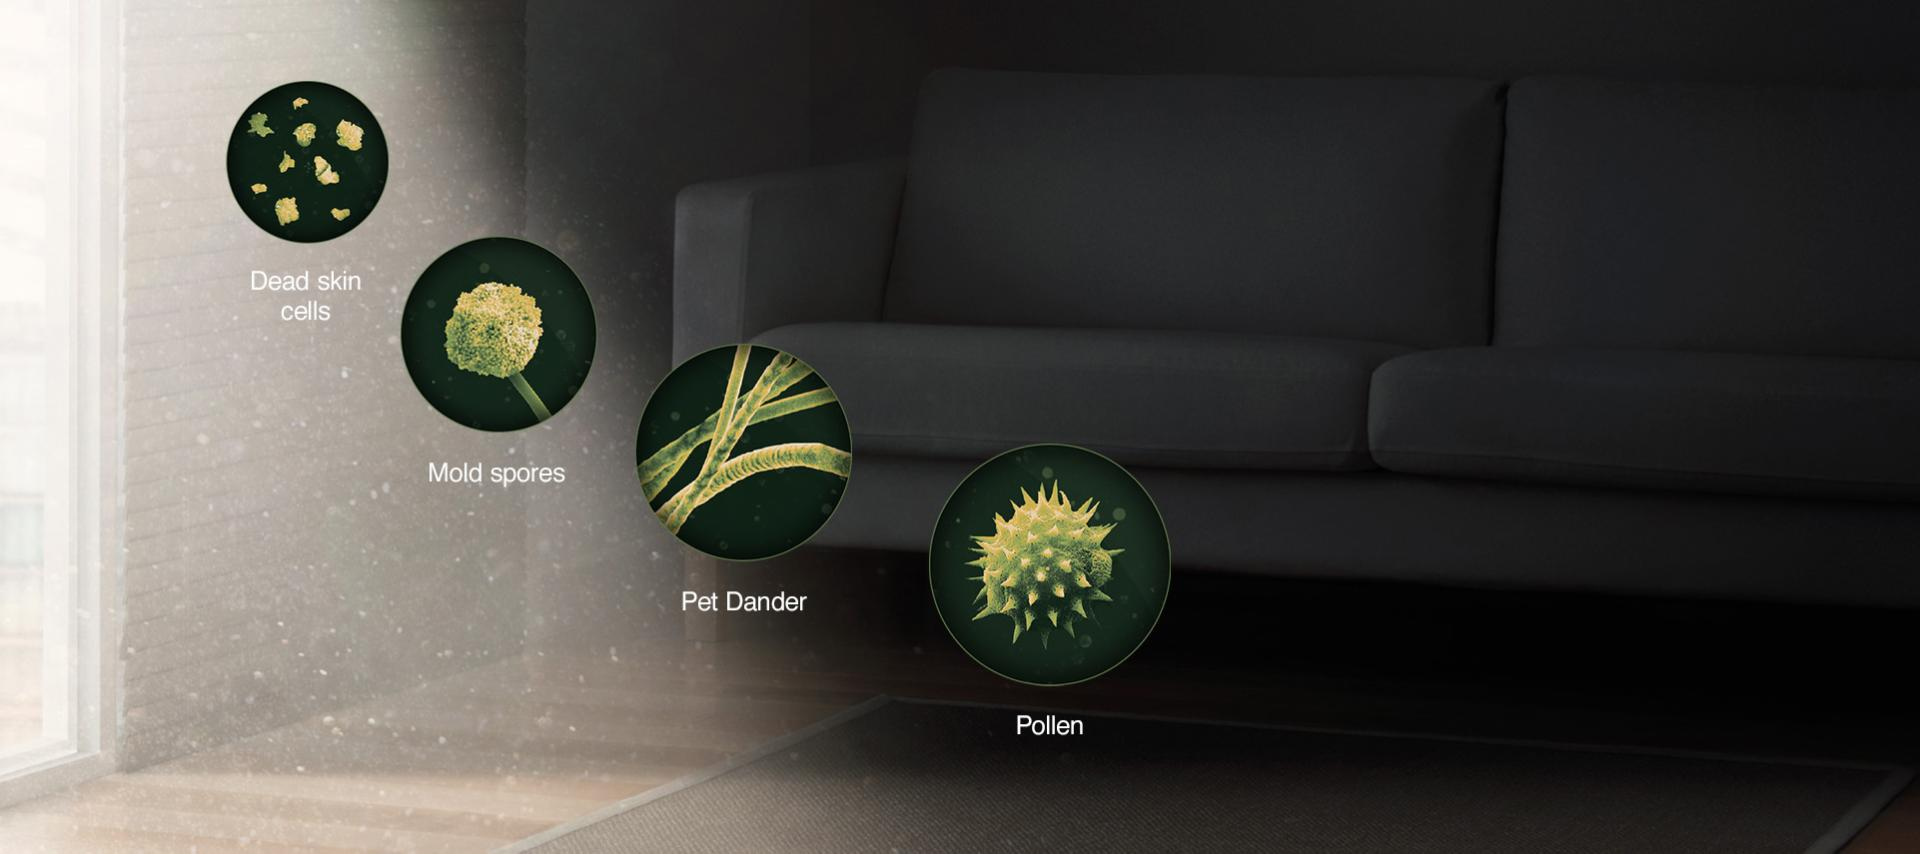 Images of different bacteria/pollutants and allergens found around the home